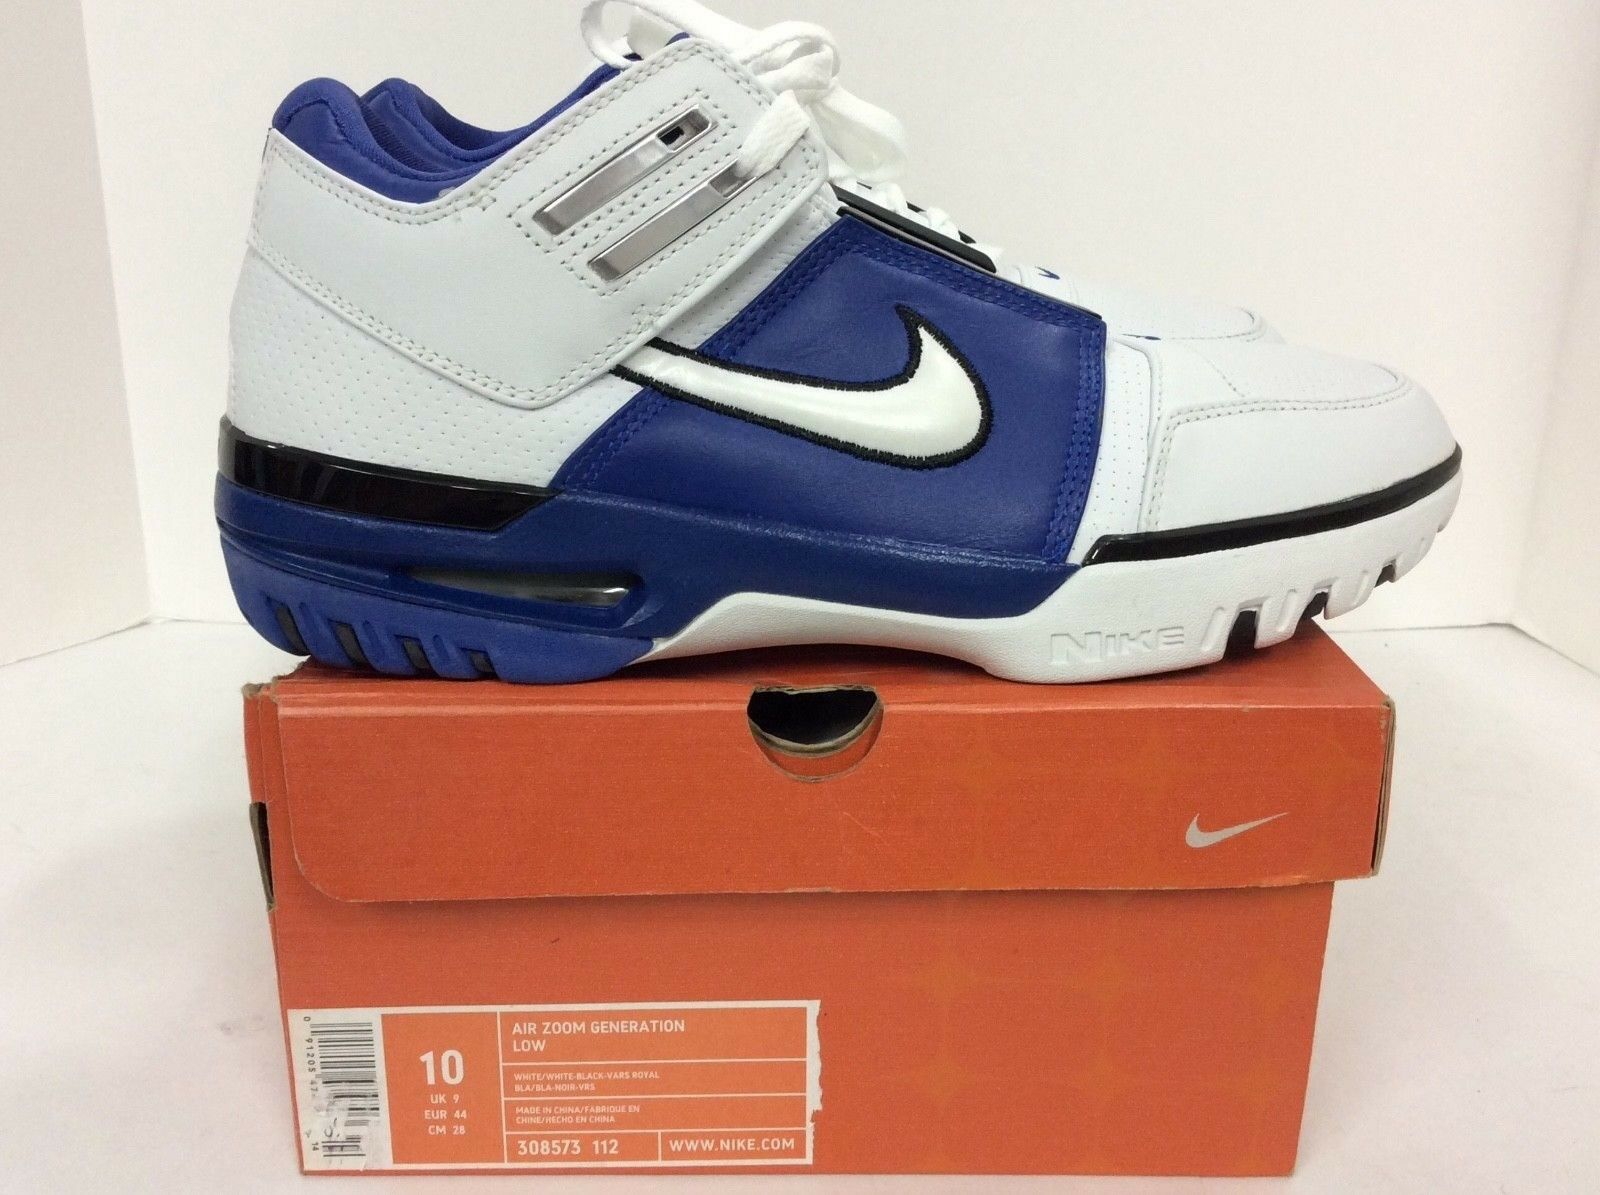 fbed6873a2a Nike Mens Air Zoom Generation Low size 10 LeBron LeBron LeBron James Style  bfb383